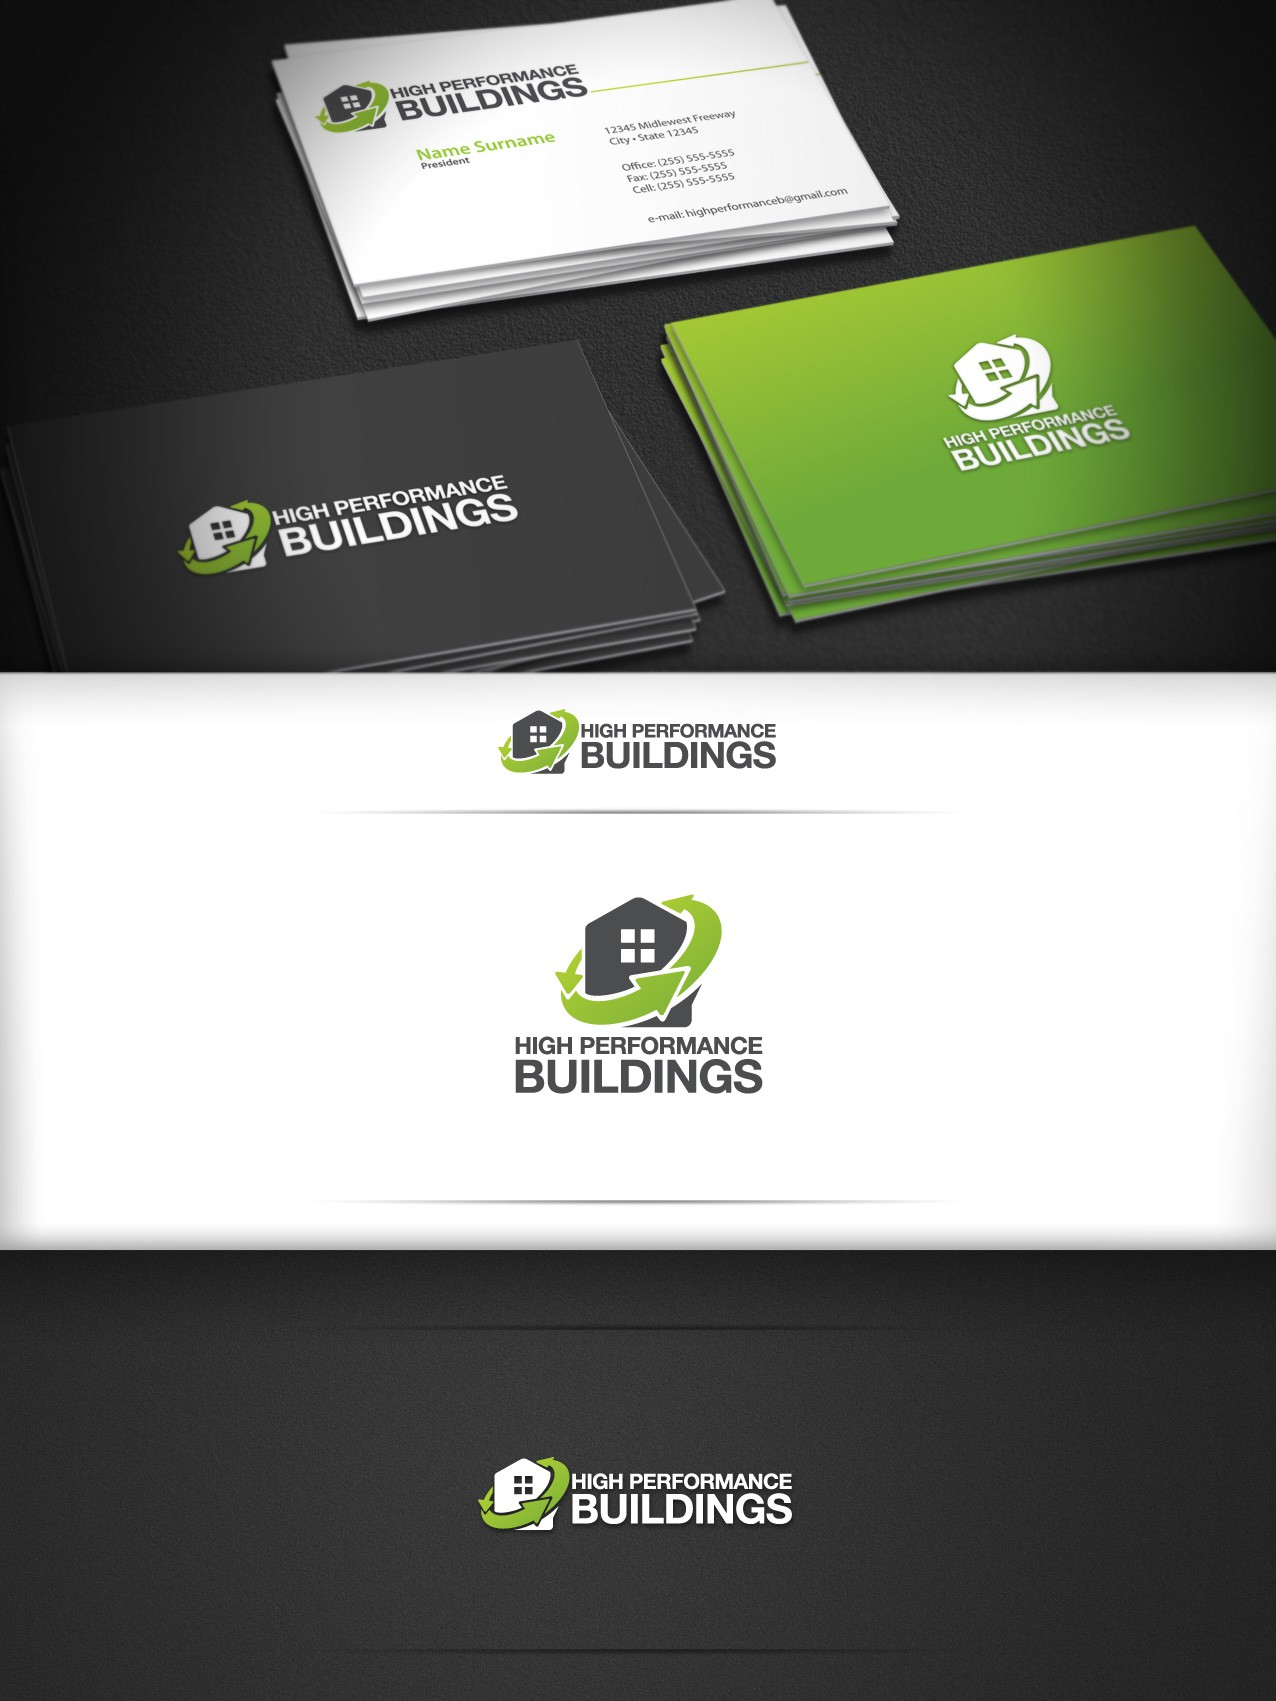 High Performance Buildings needs our first logo!